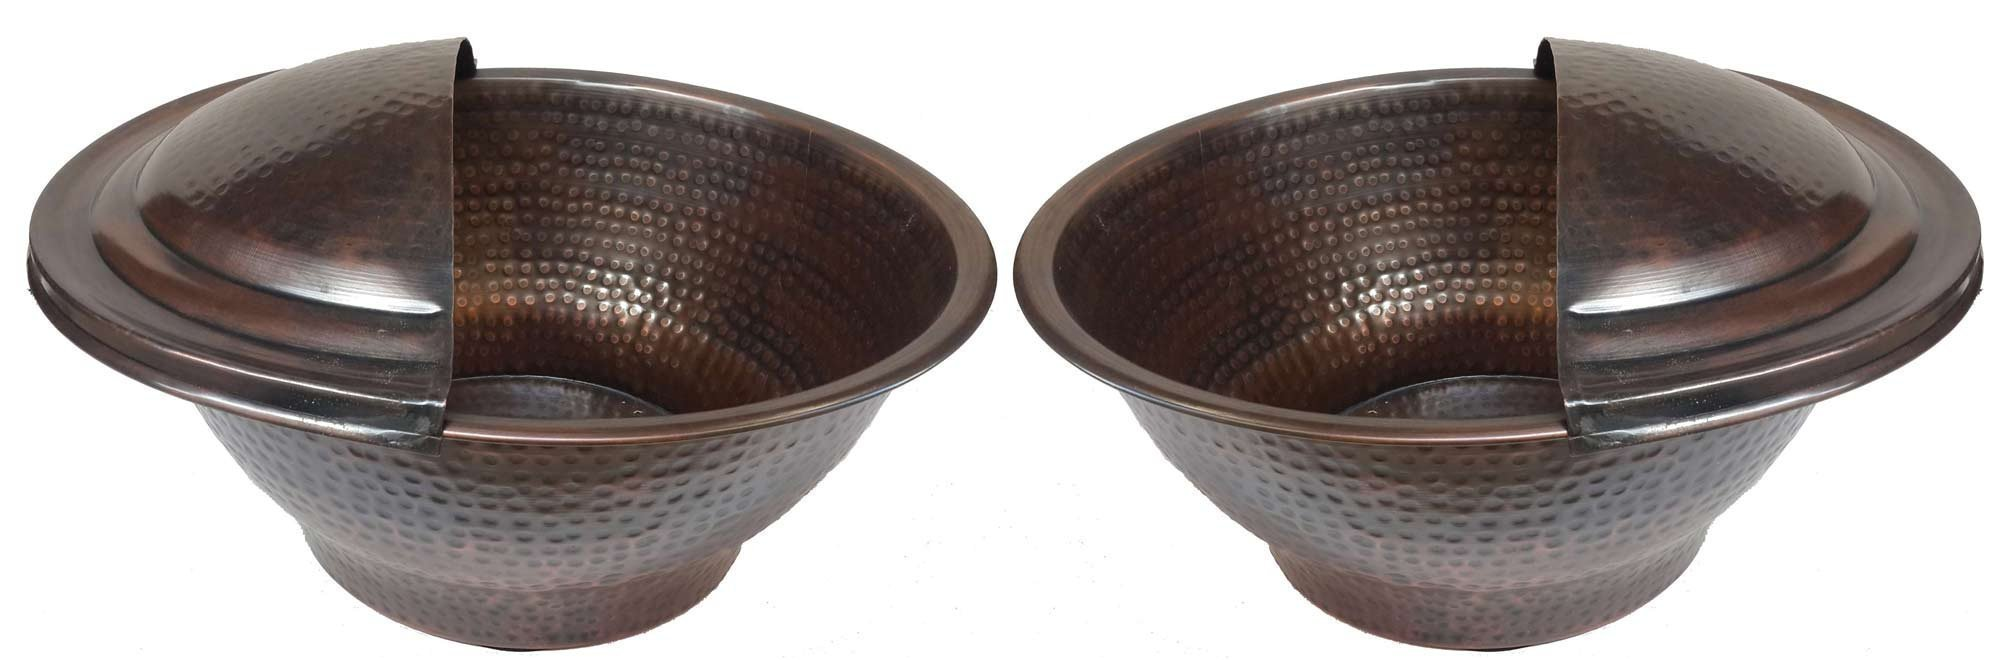 Egypt gift shops Pair Antique Patina Copper Massage Therapy Deep Pedicure Water Bowls + 2 Foot Rests